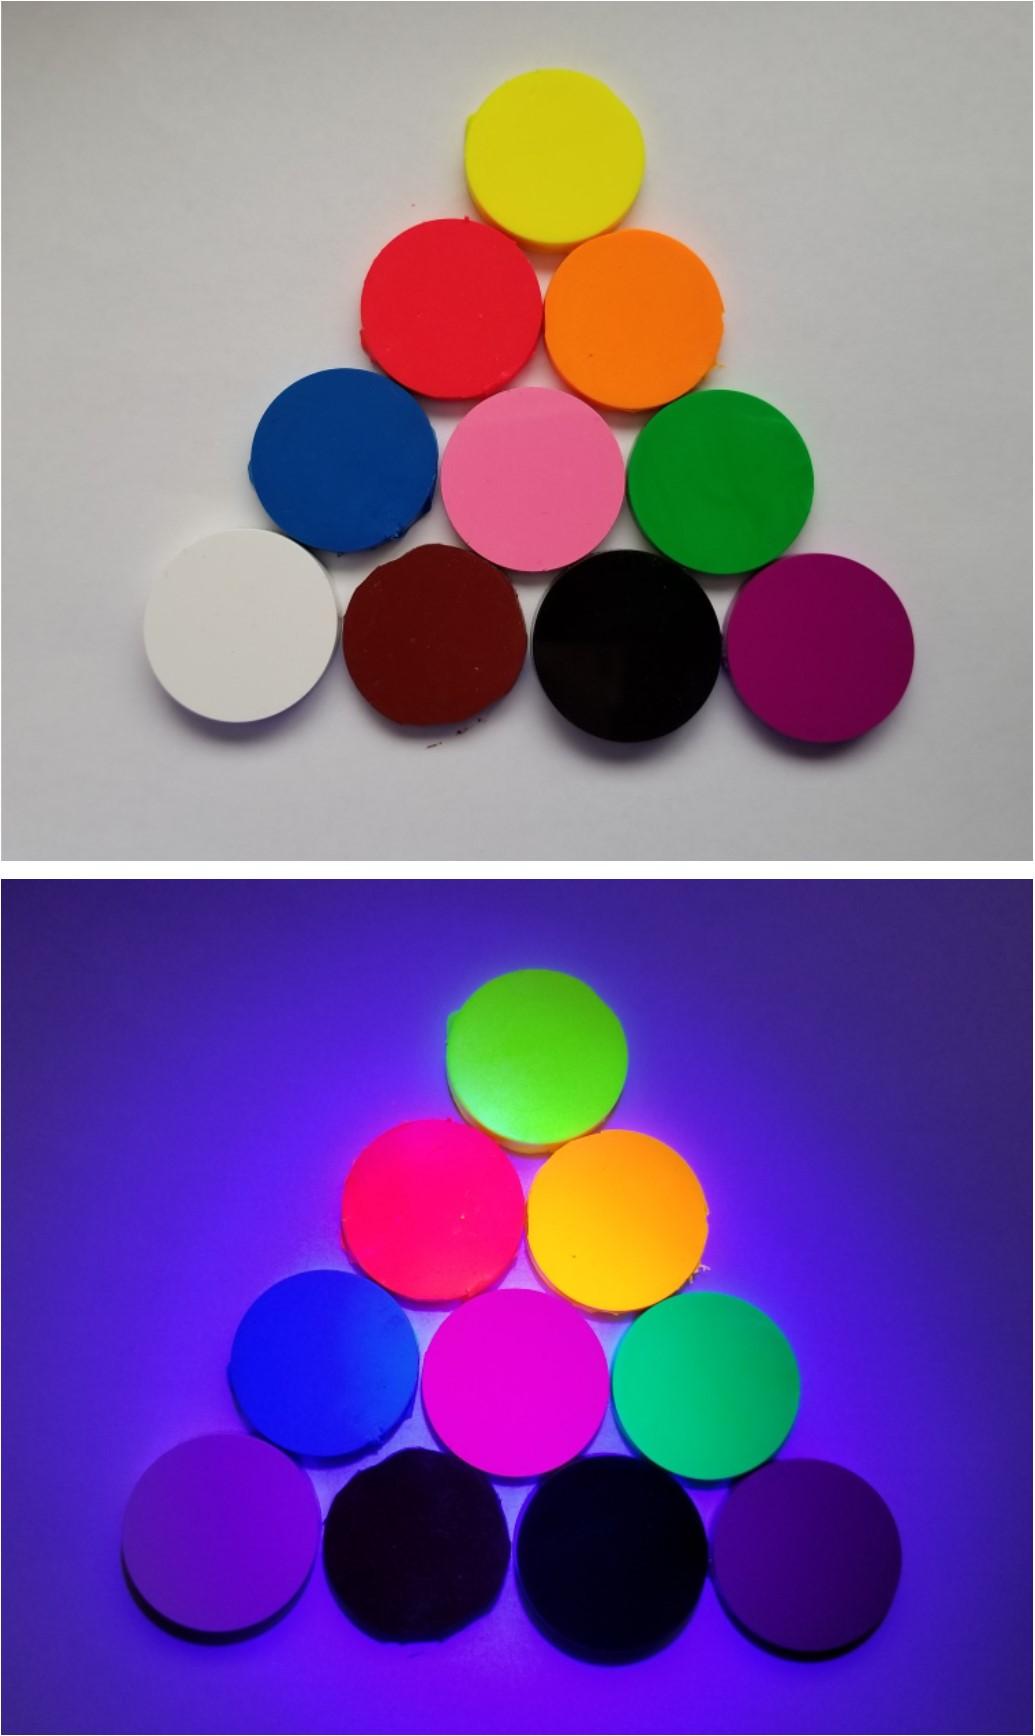 Visible Implant Elastomer in ambient light and fluoresced